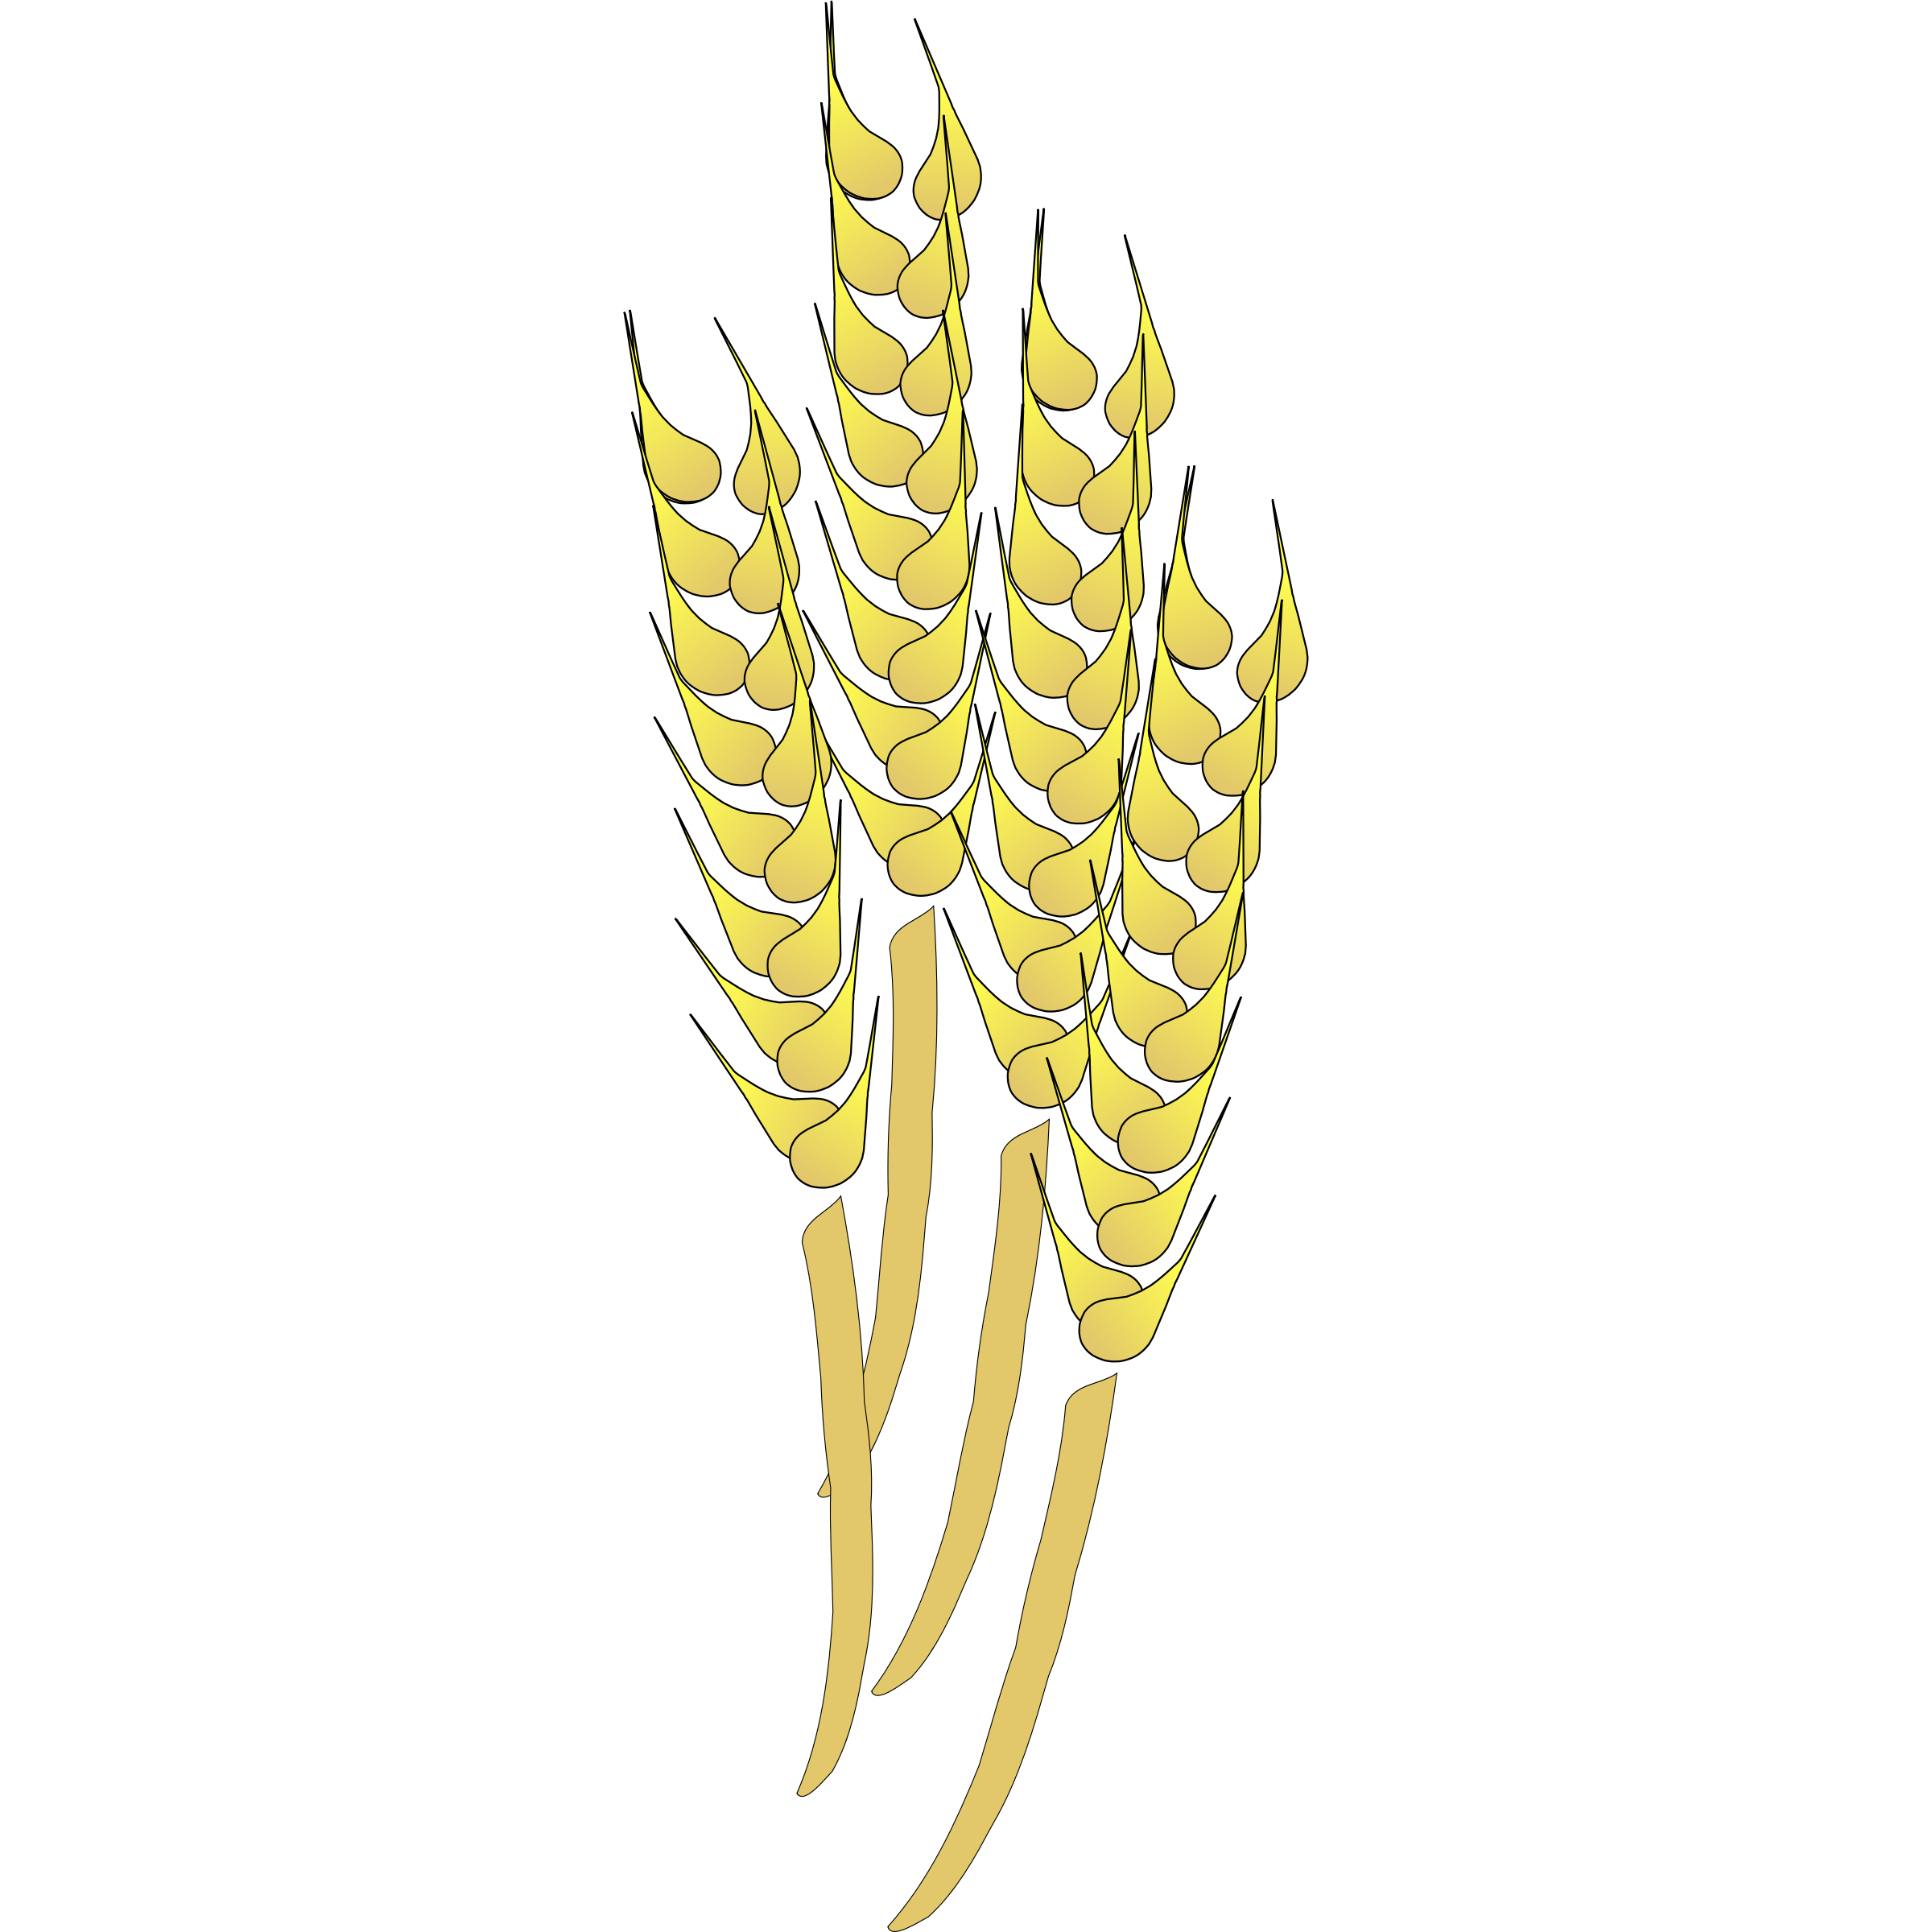 4 wheat clipart - Clipground